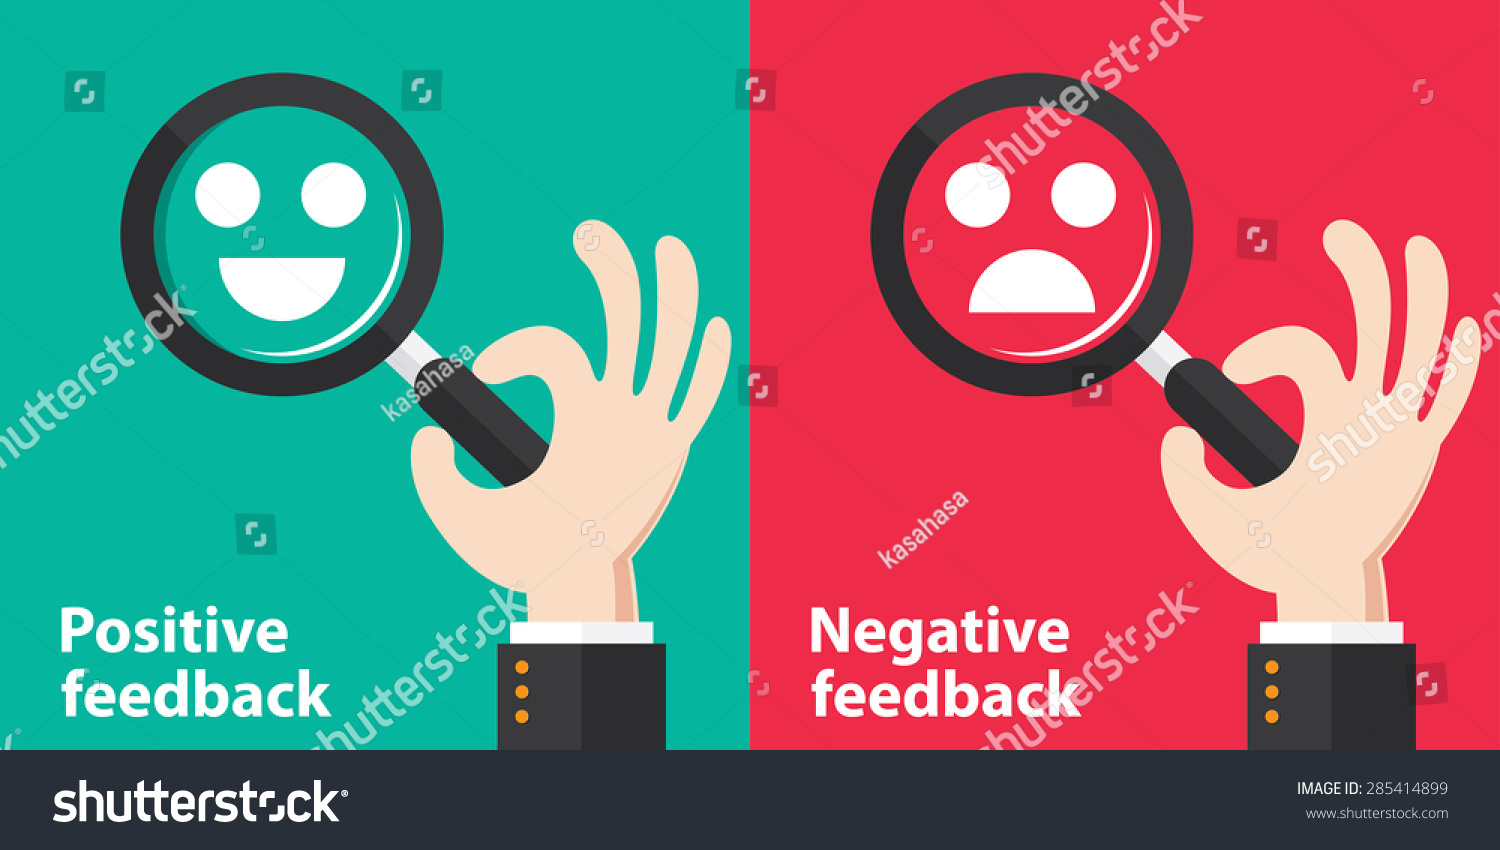 the concepts of negative and positive